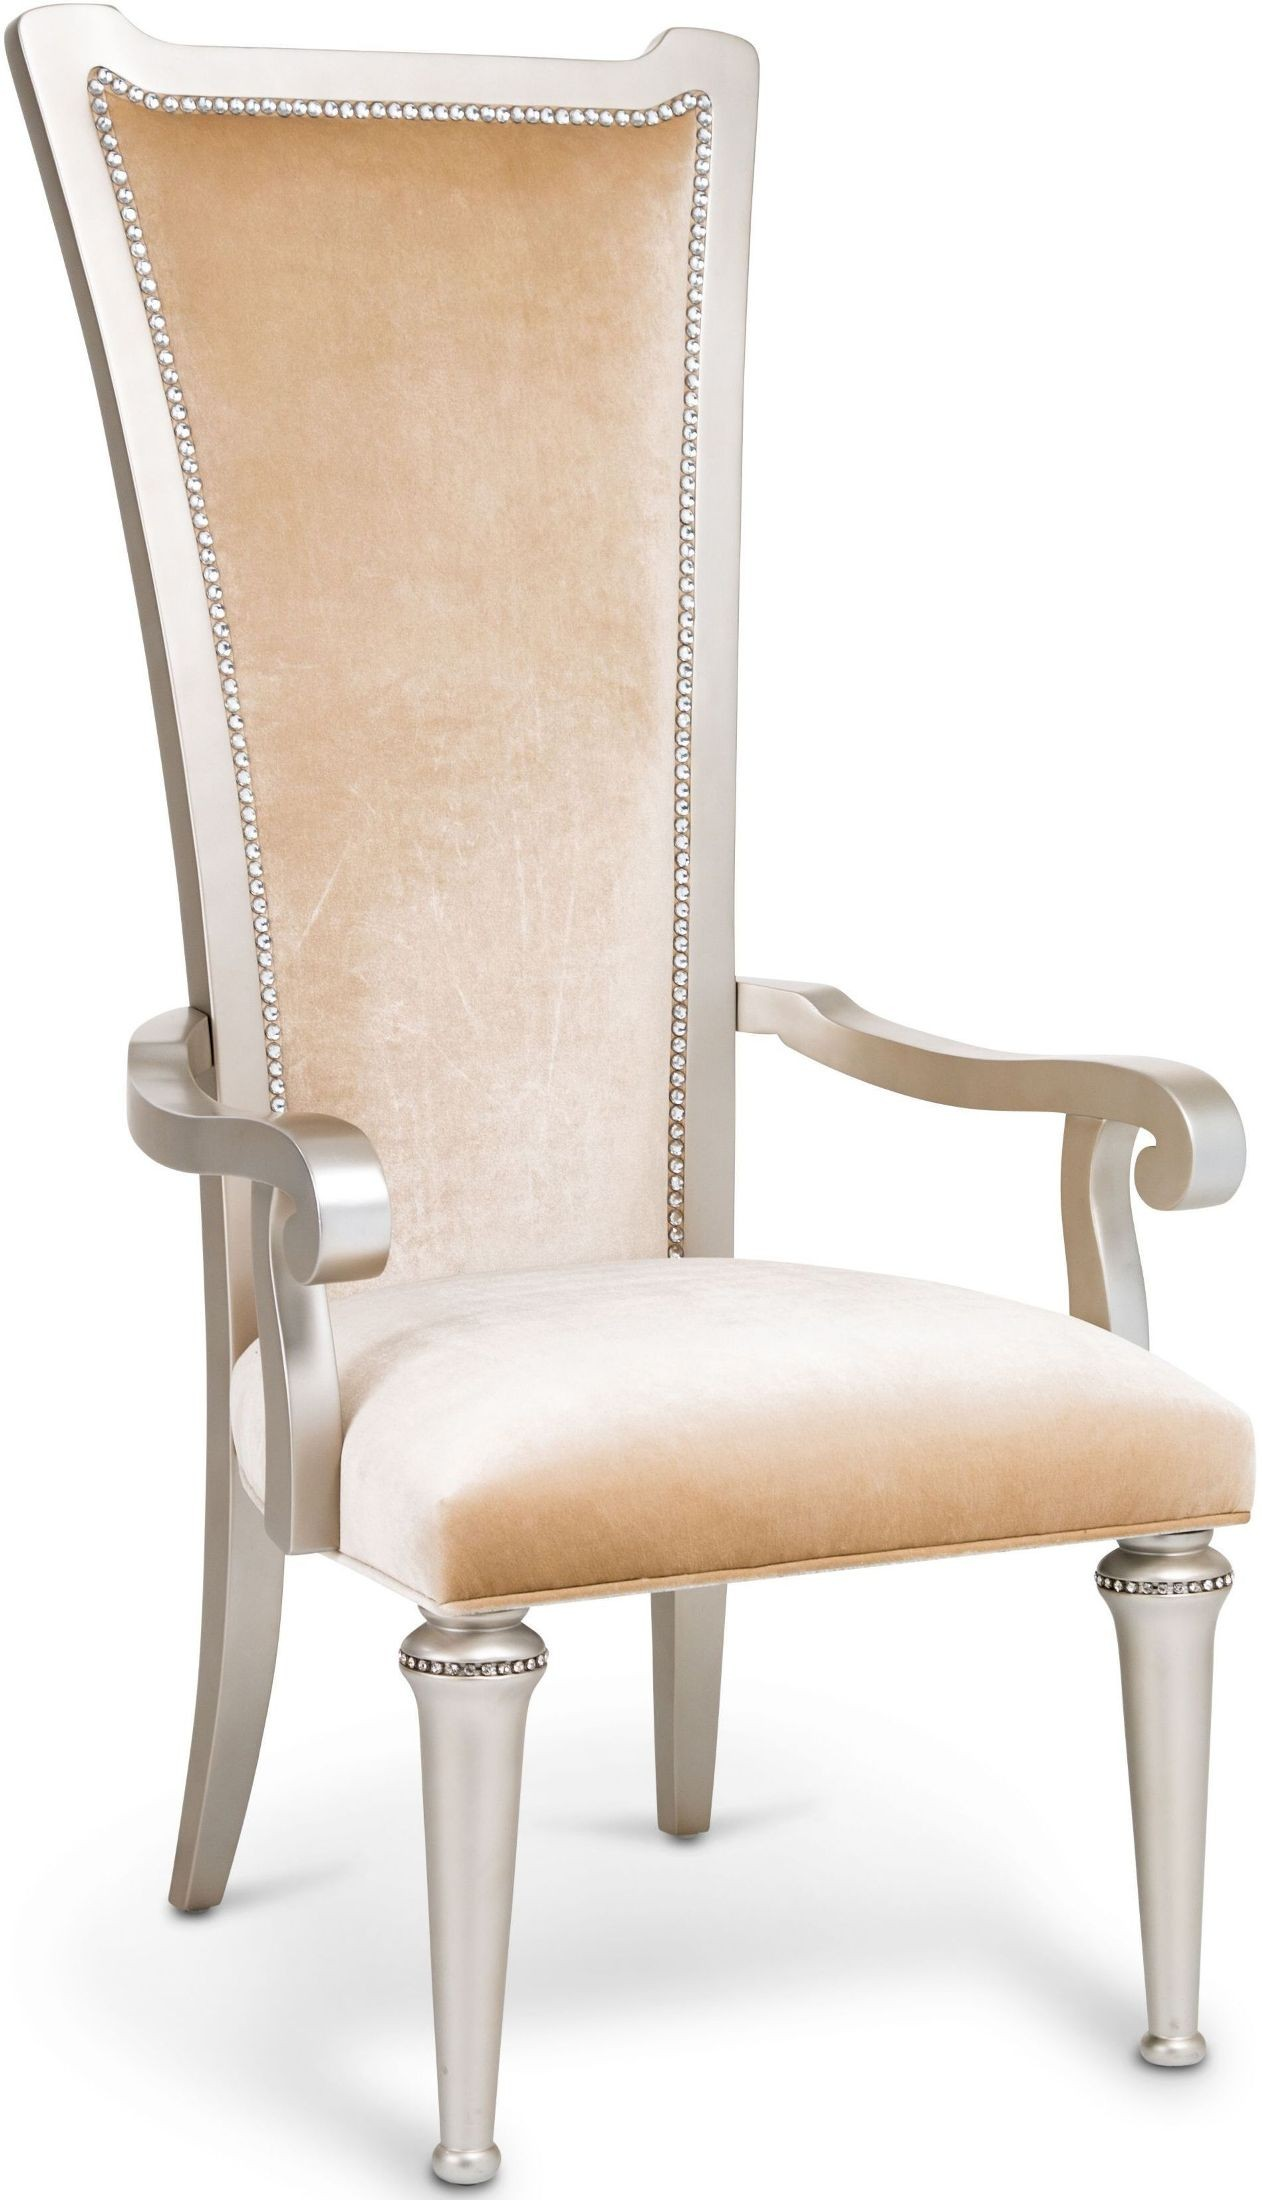 Champagne Chair Bel Air Park Champagne Desk Chair From Aico Coleman